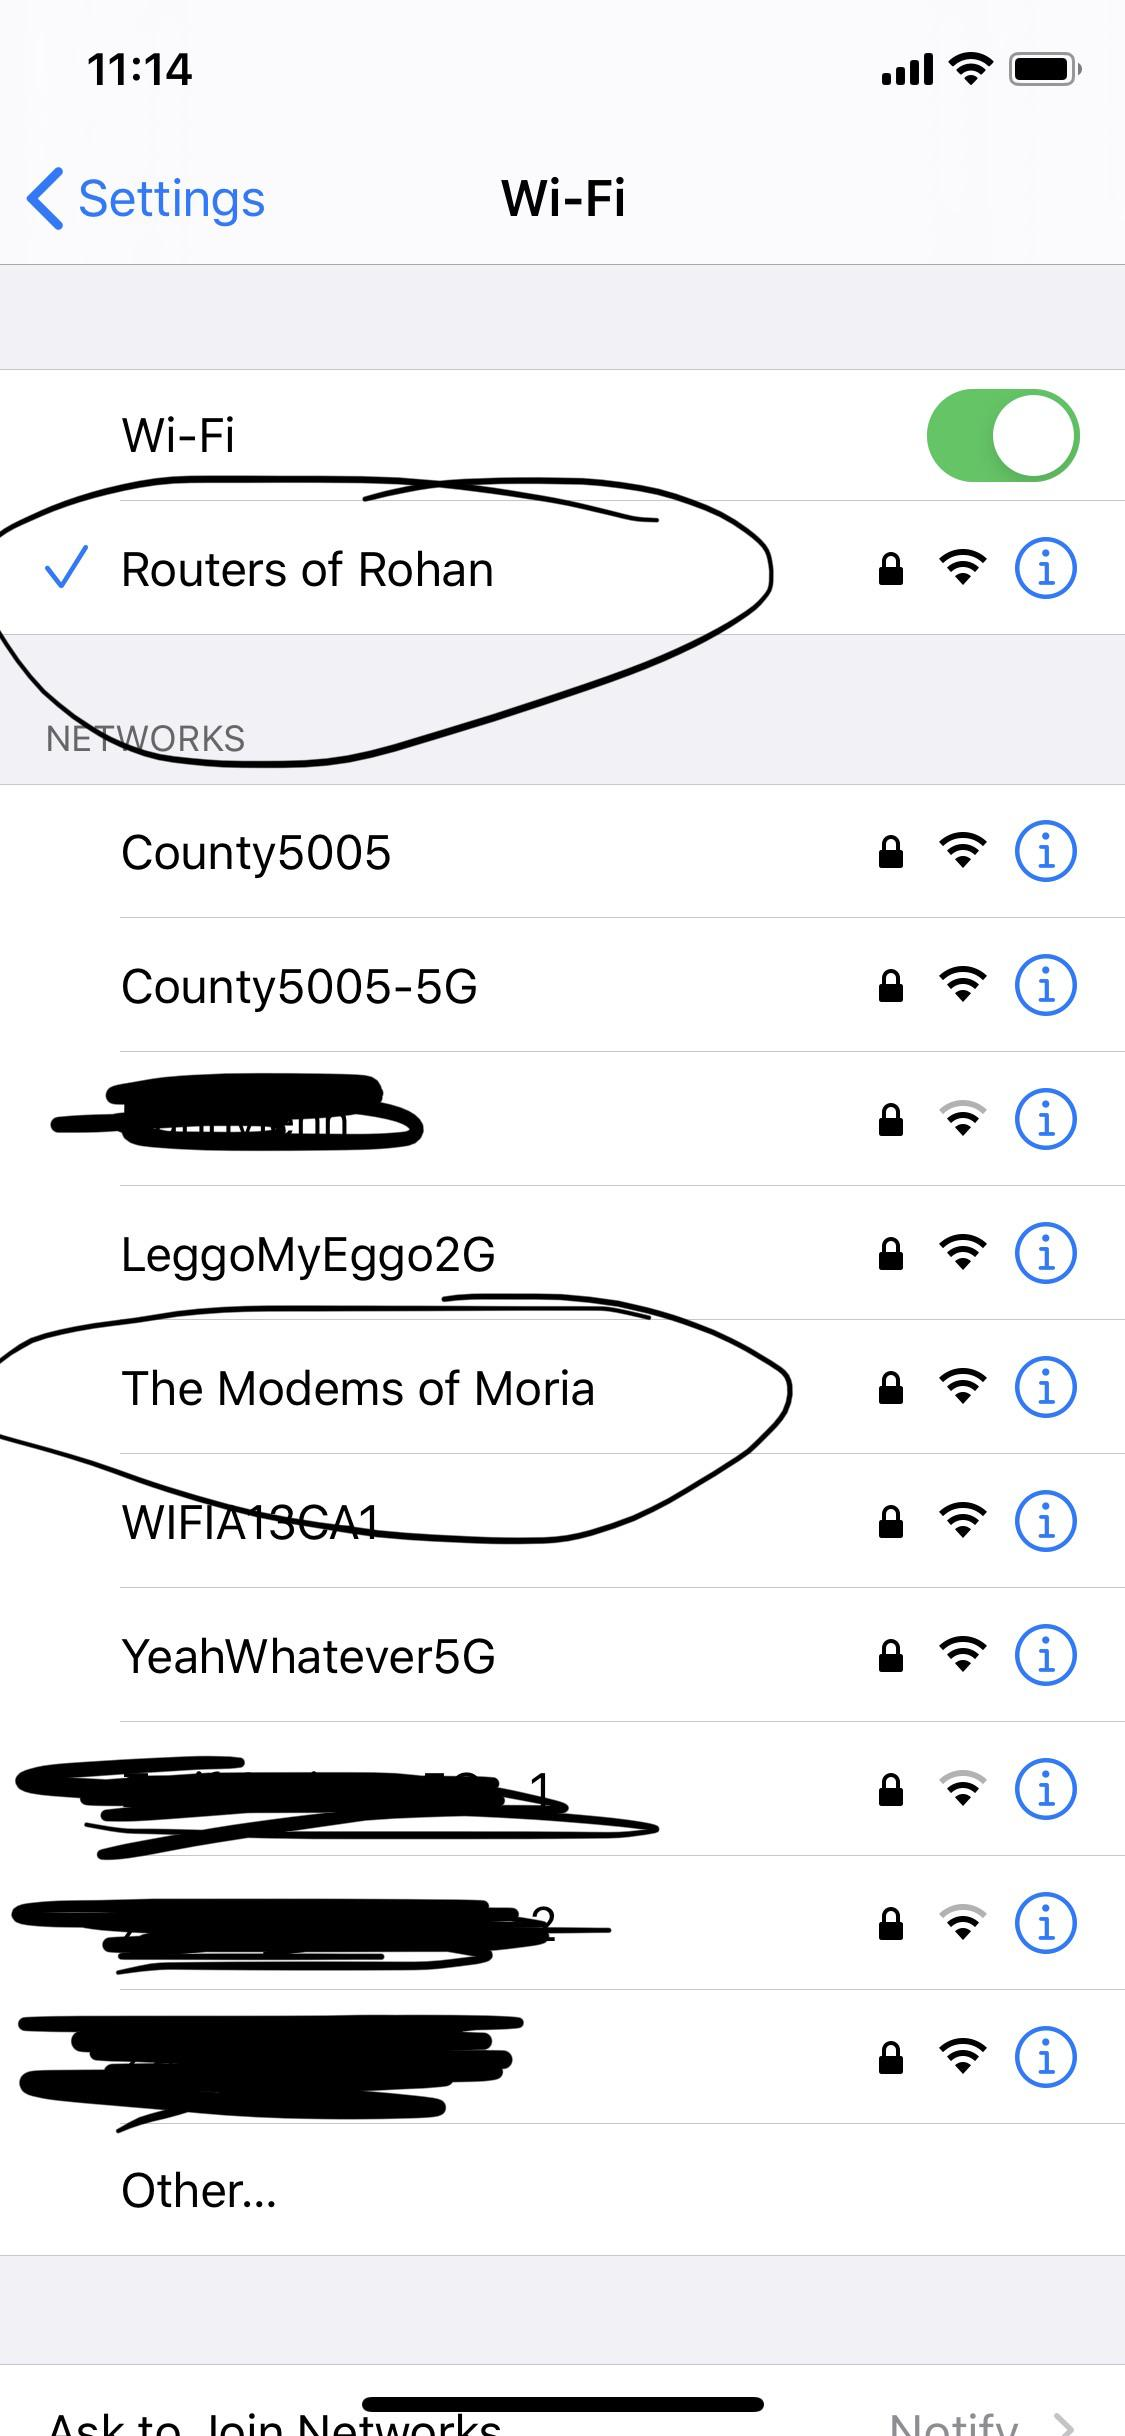 150+ Clever WiFi Names | Complete List of Smart Wifi Names (2019)